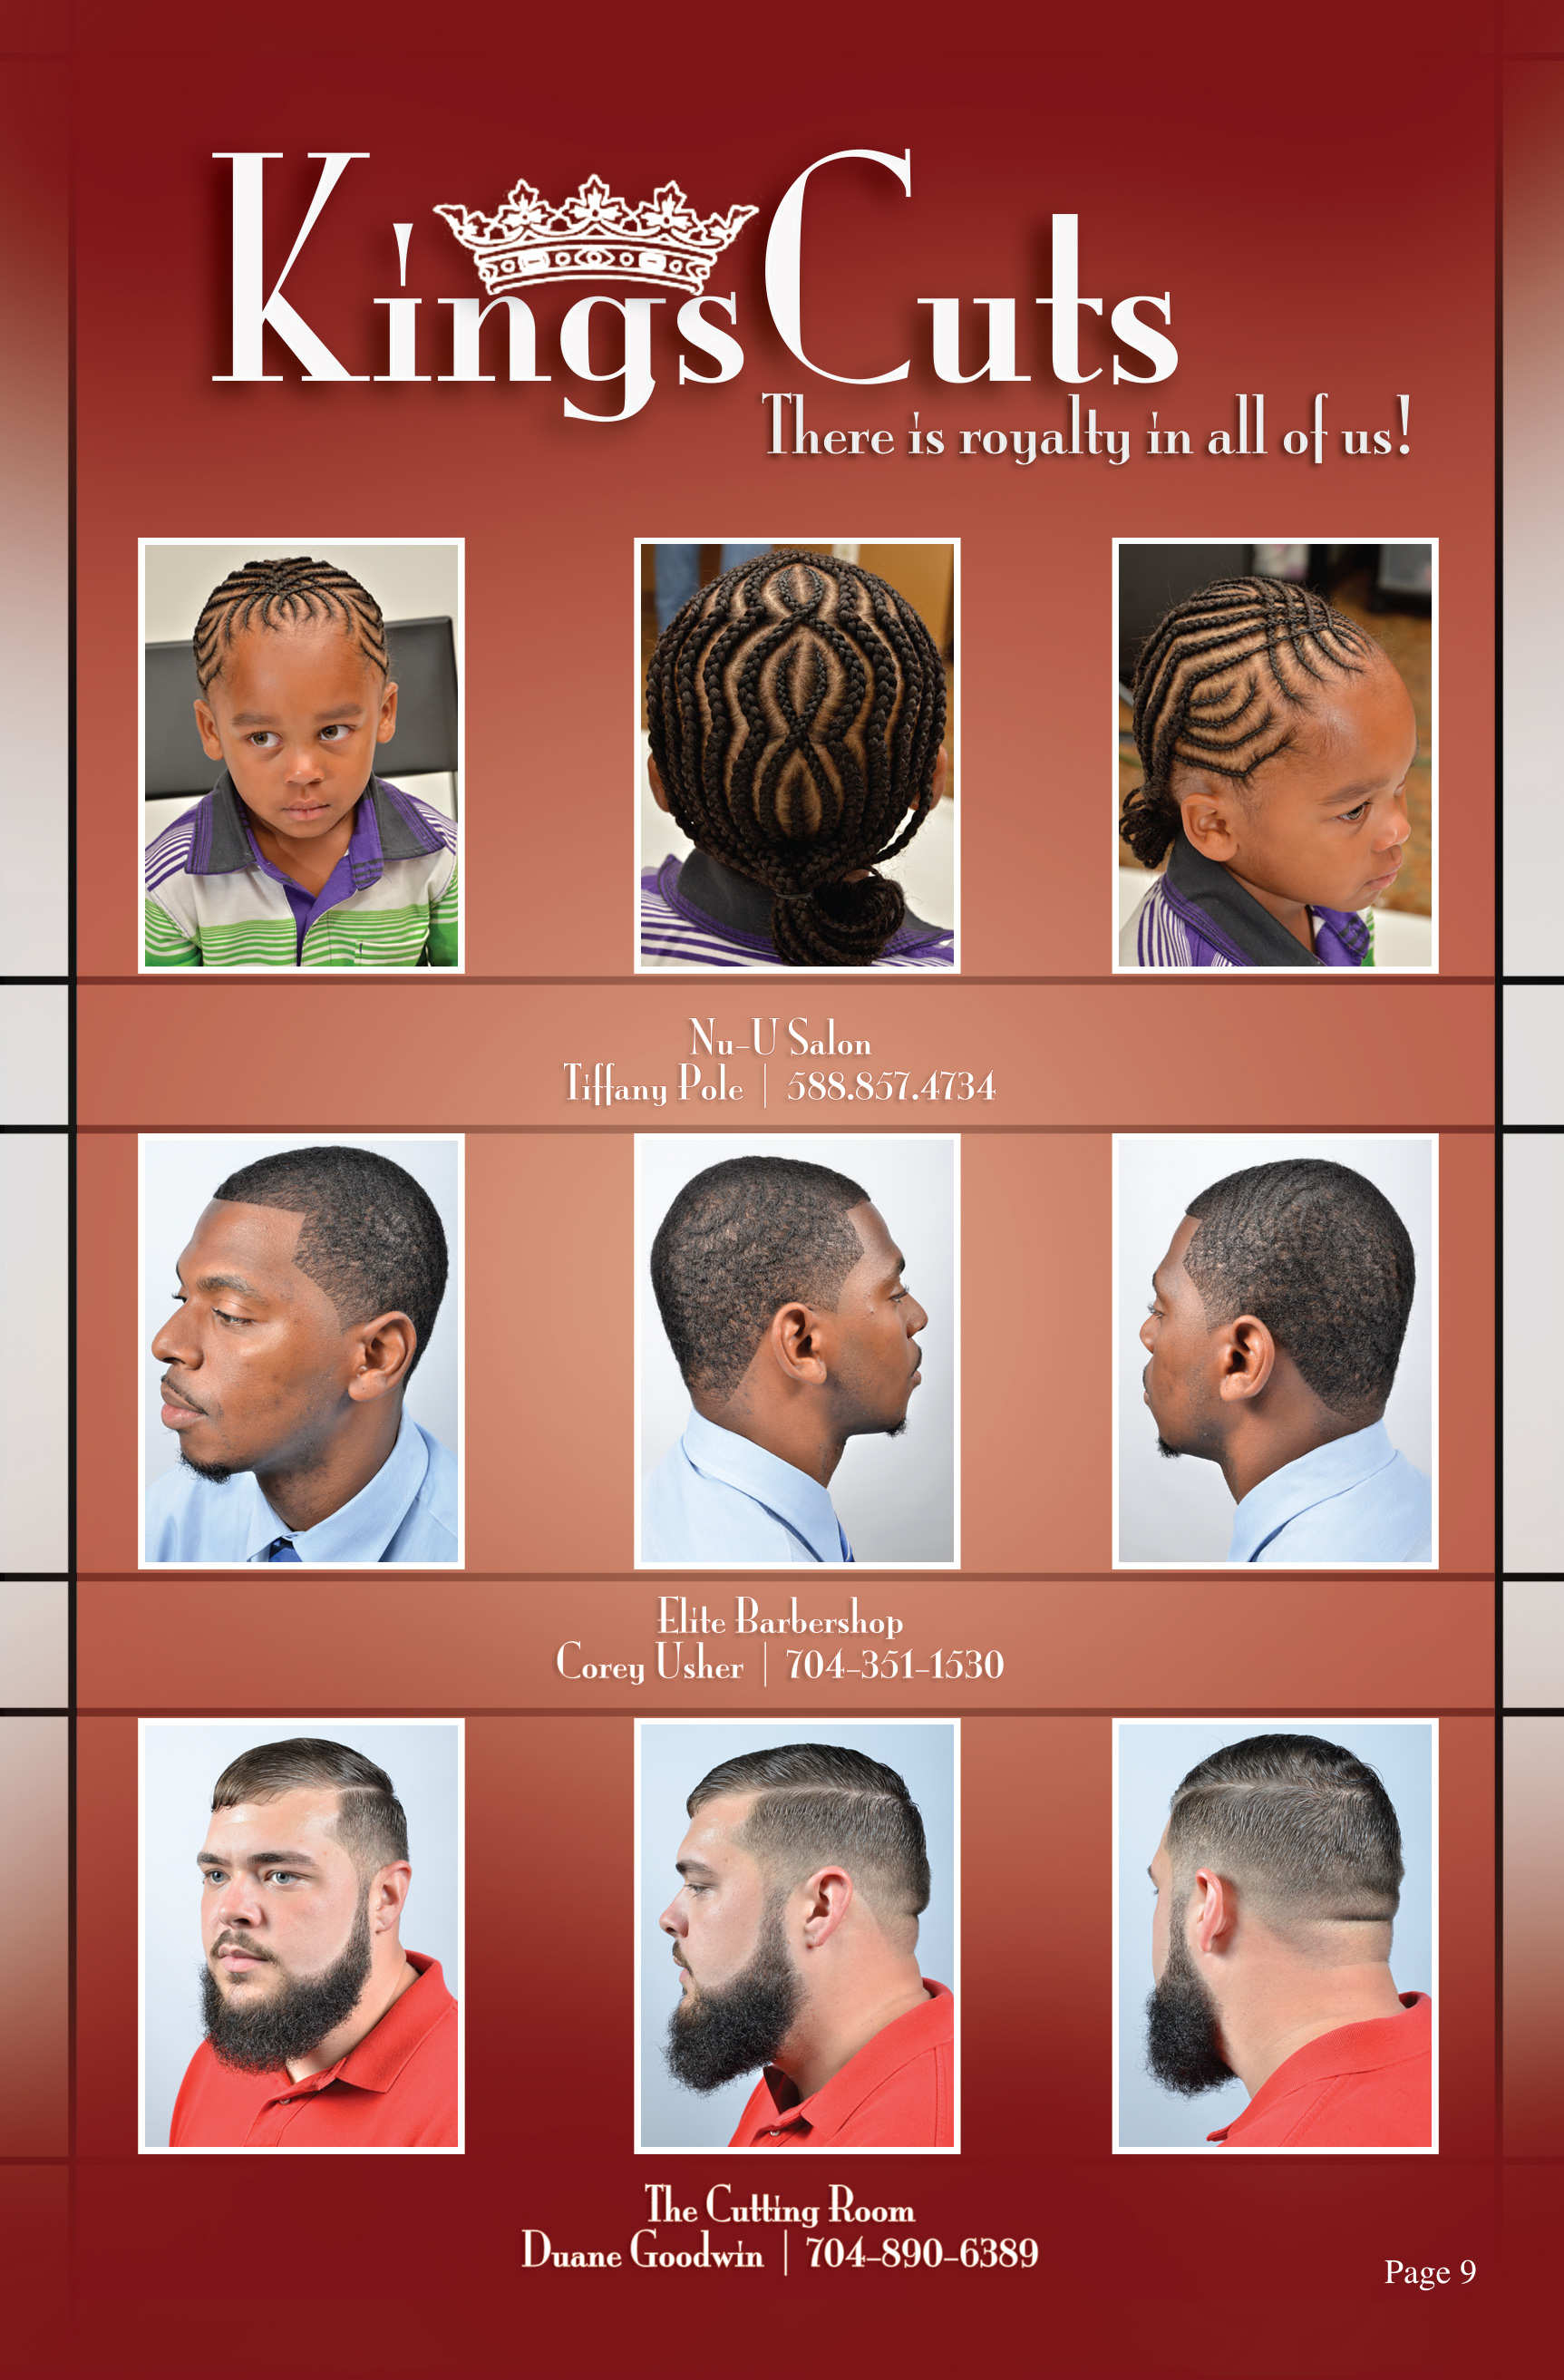 Aug2013 Kings Cuts 1